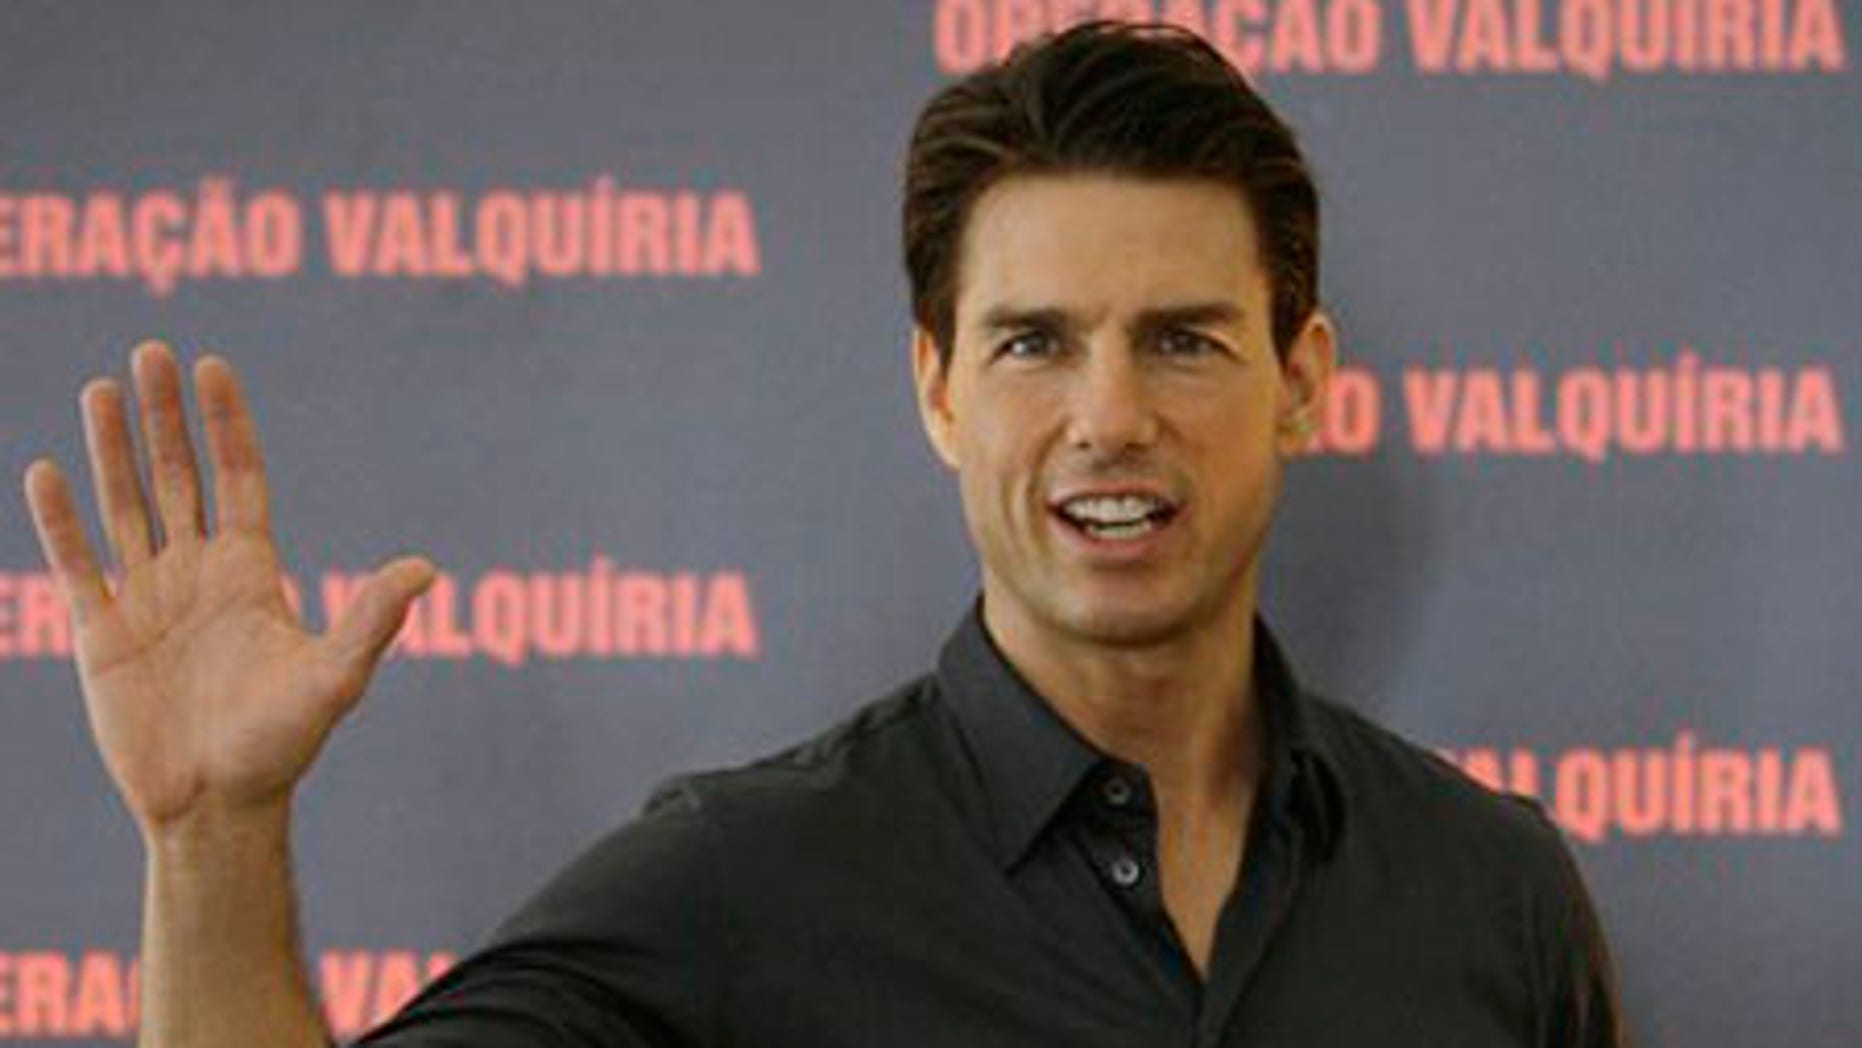 """Feb. 3: Actor Tom Cruise waves during a photo call to promote his movie """"Valkyrie"""" in Rio de Janeiro, Tuesday."""